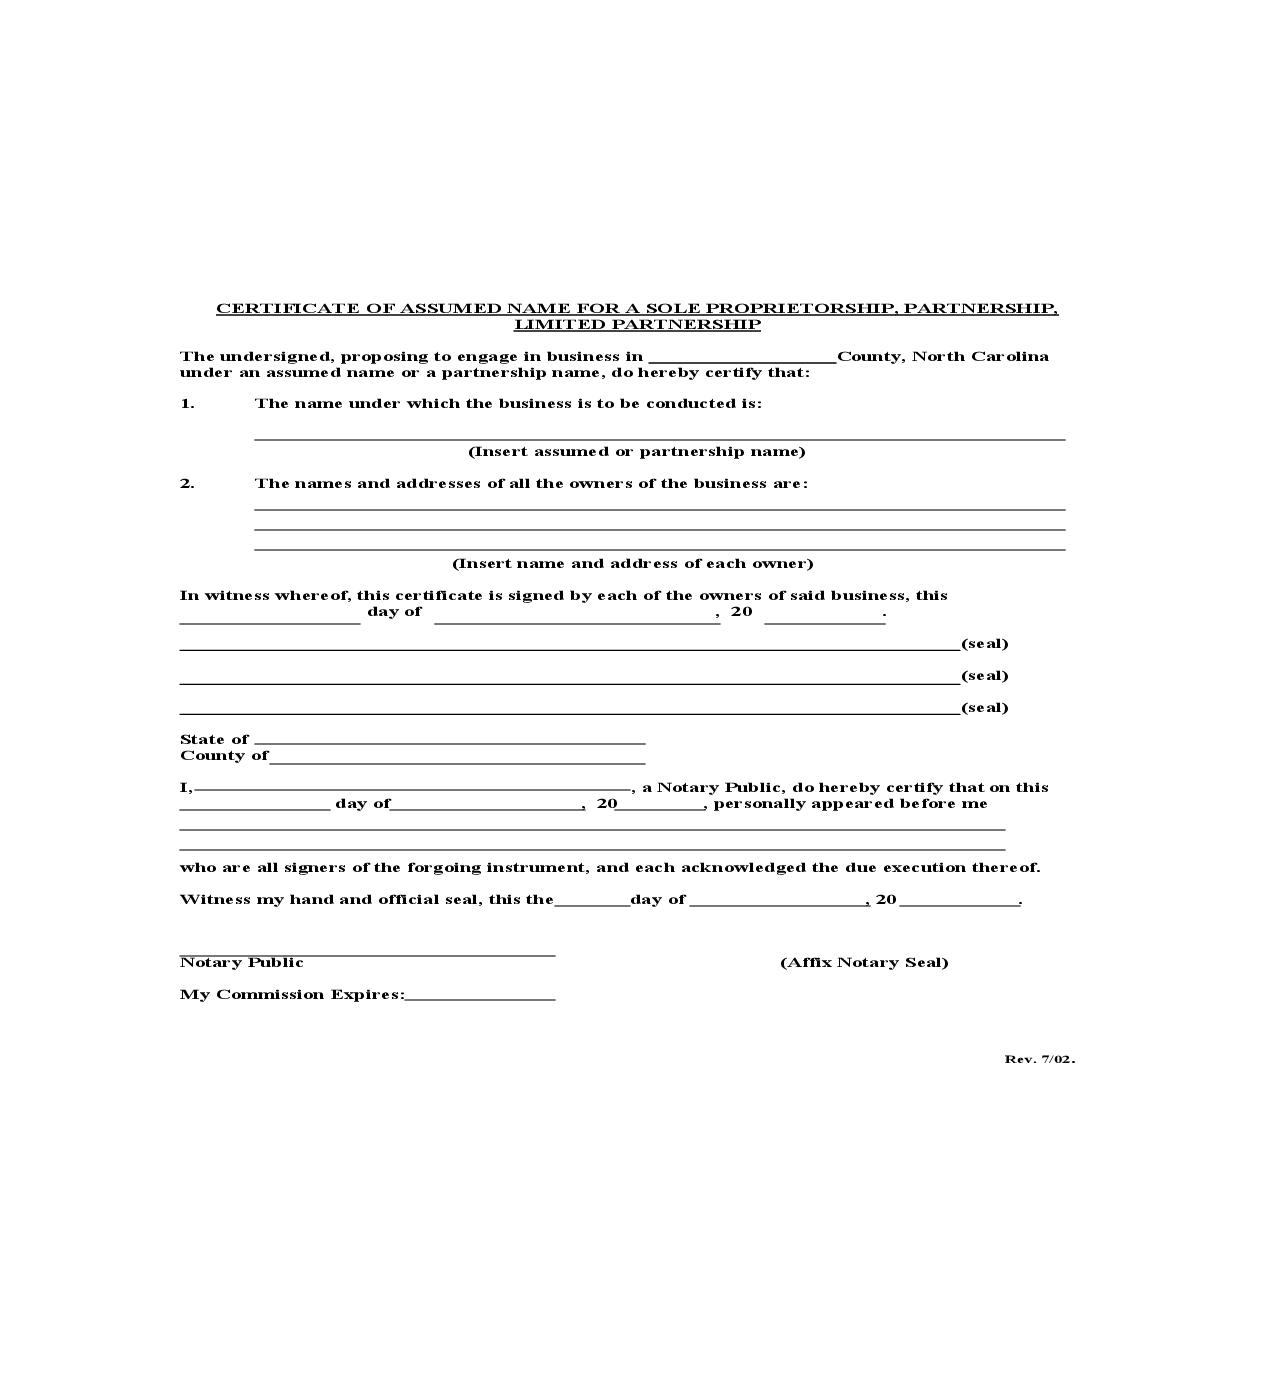 Certificate Of Assumed Name For Sole Proprietorship Partnership Or Limited Partnership | Pdf Fpdf Doc Docx | North Carolina